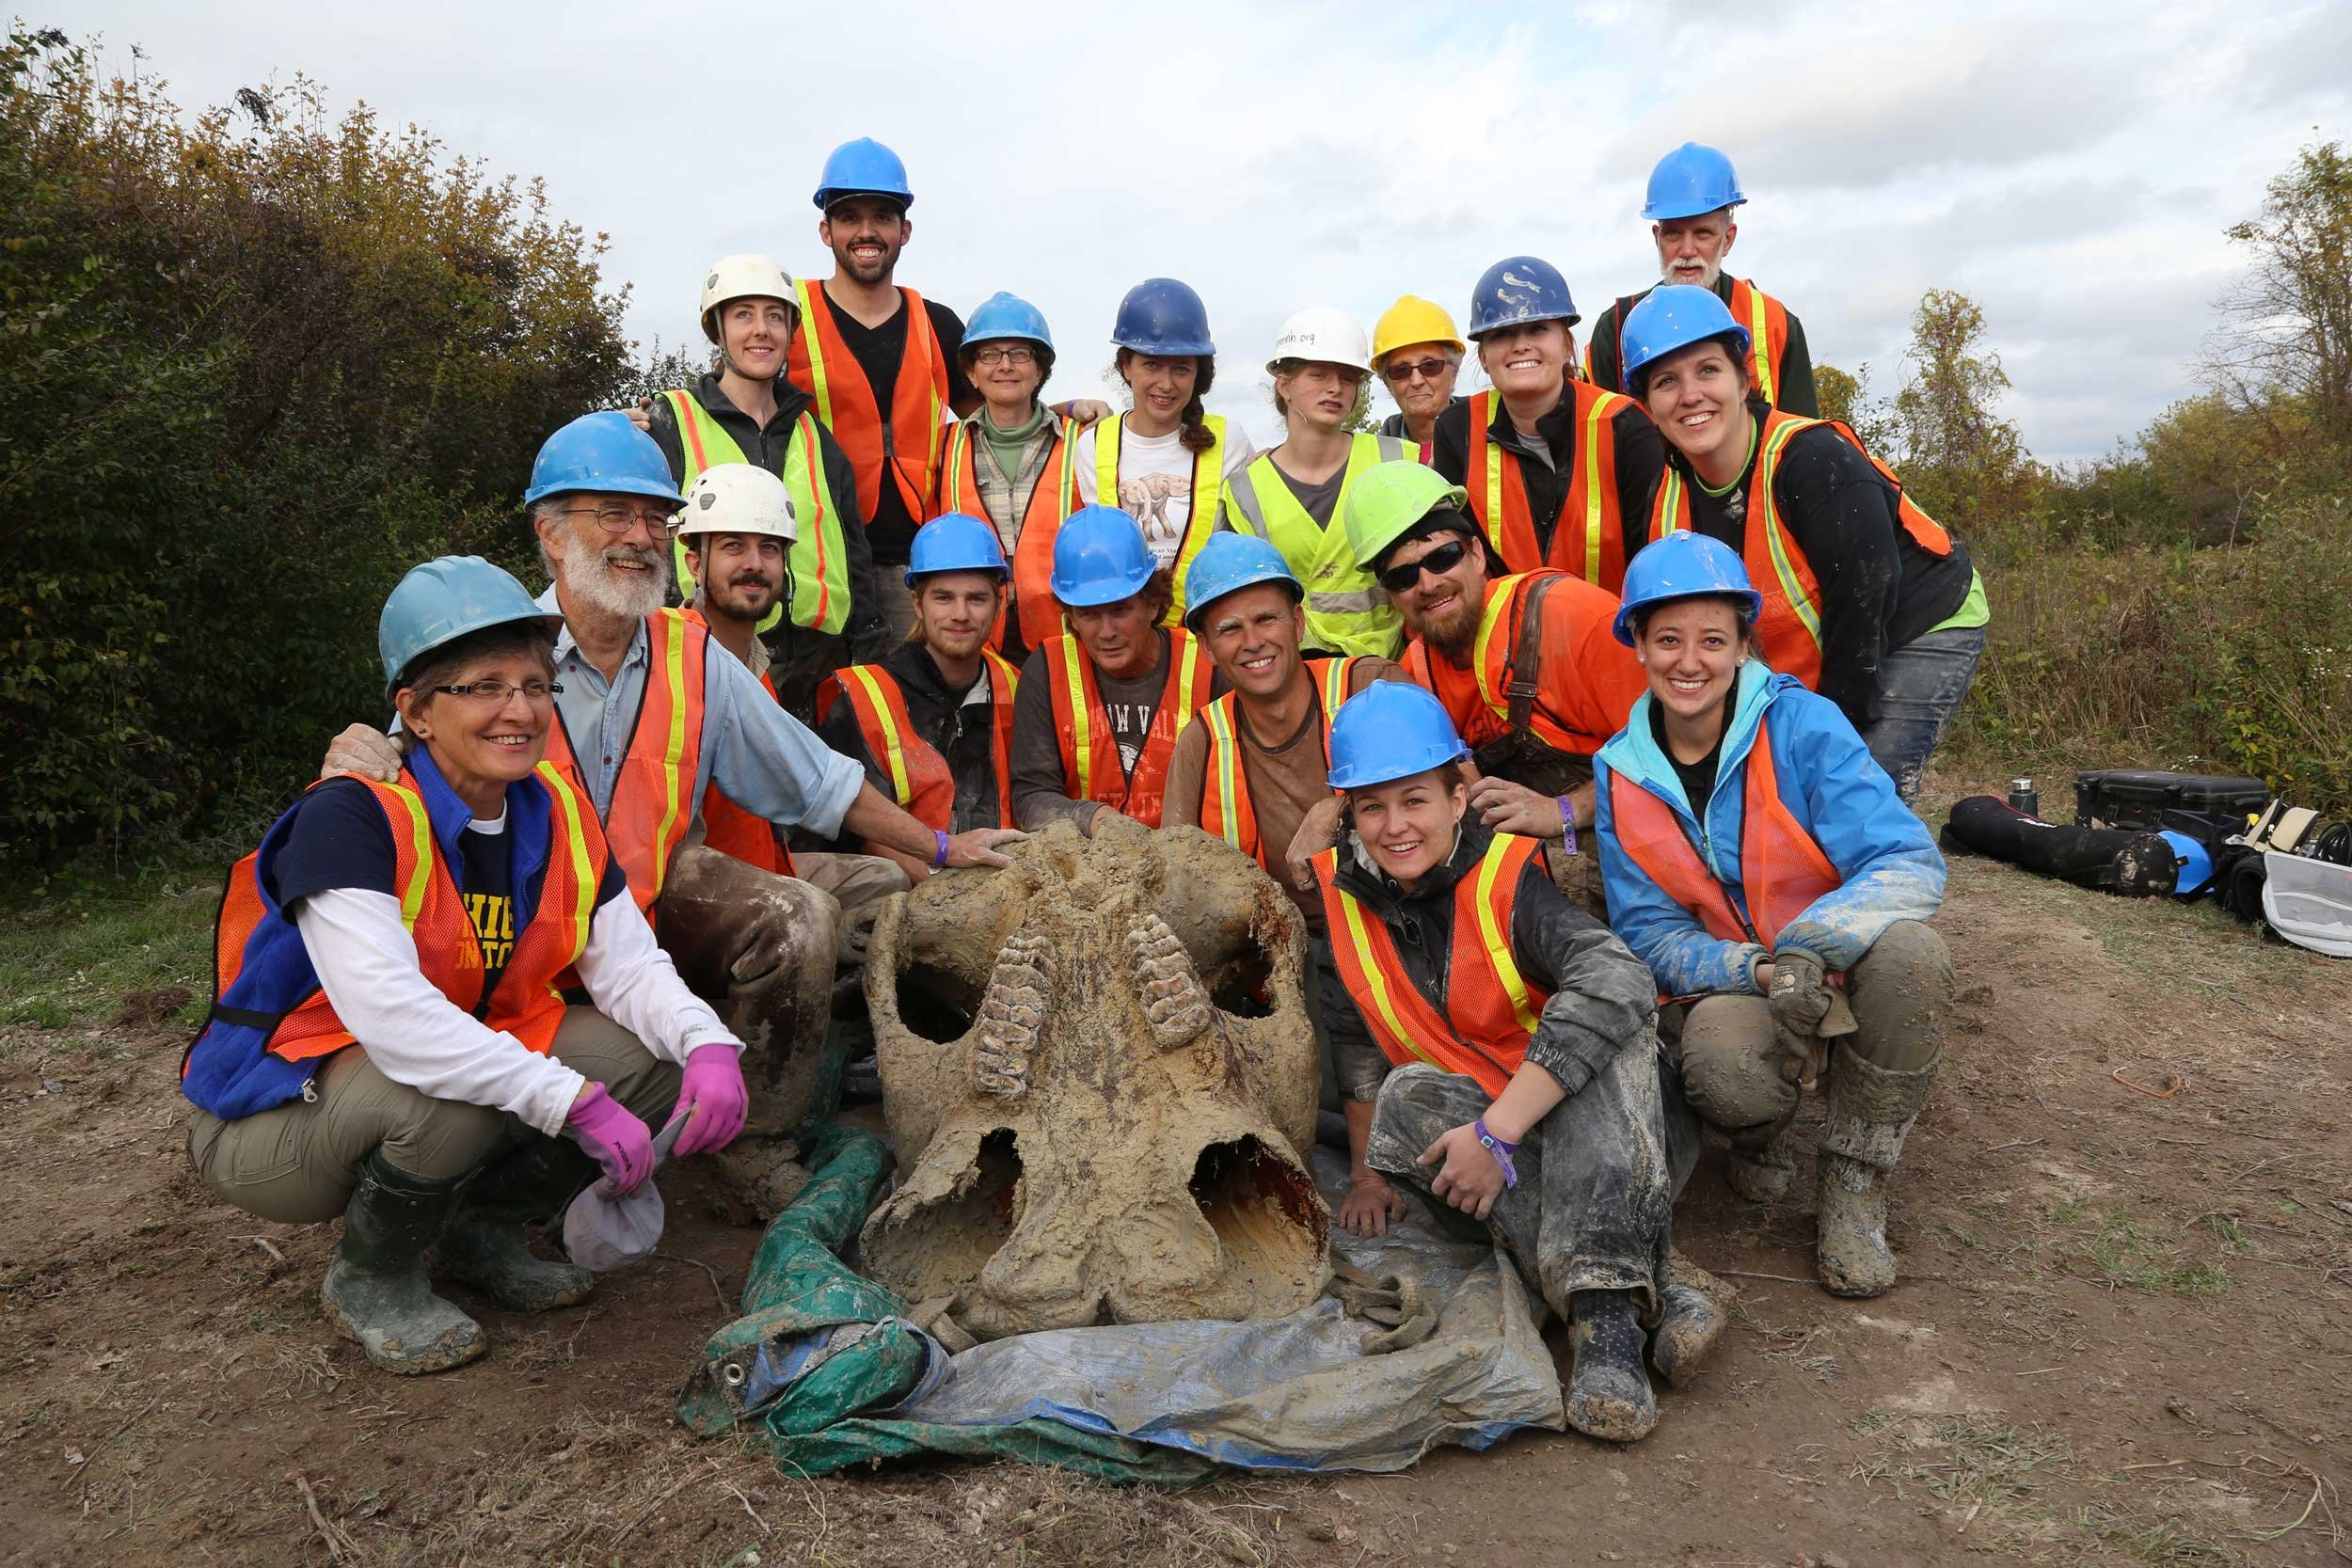 Mastodon uncovered at Fowler Center for Outdoor Learning (Source: University of Michigan)